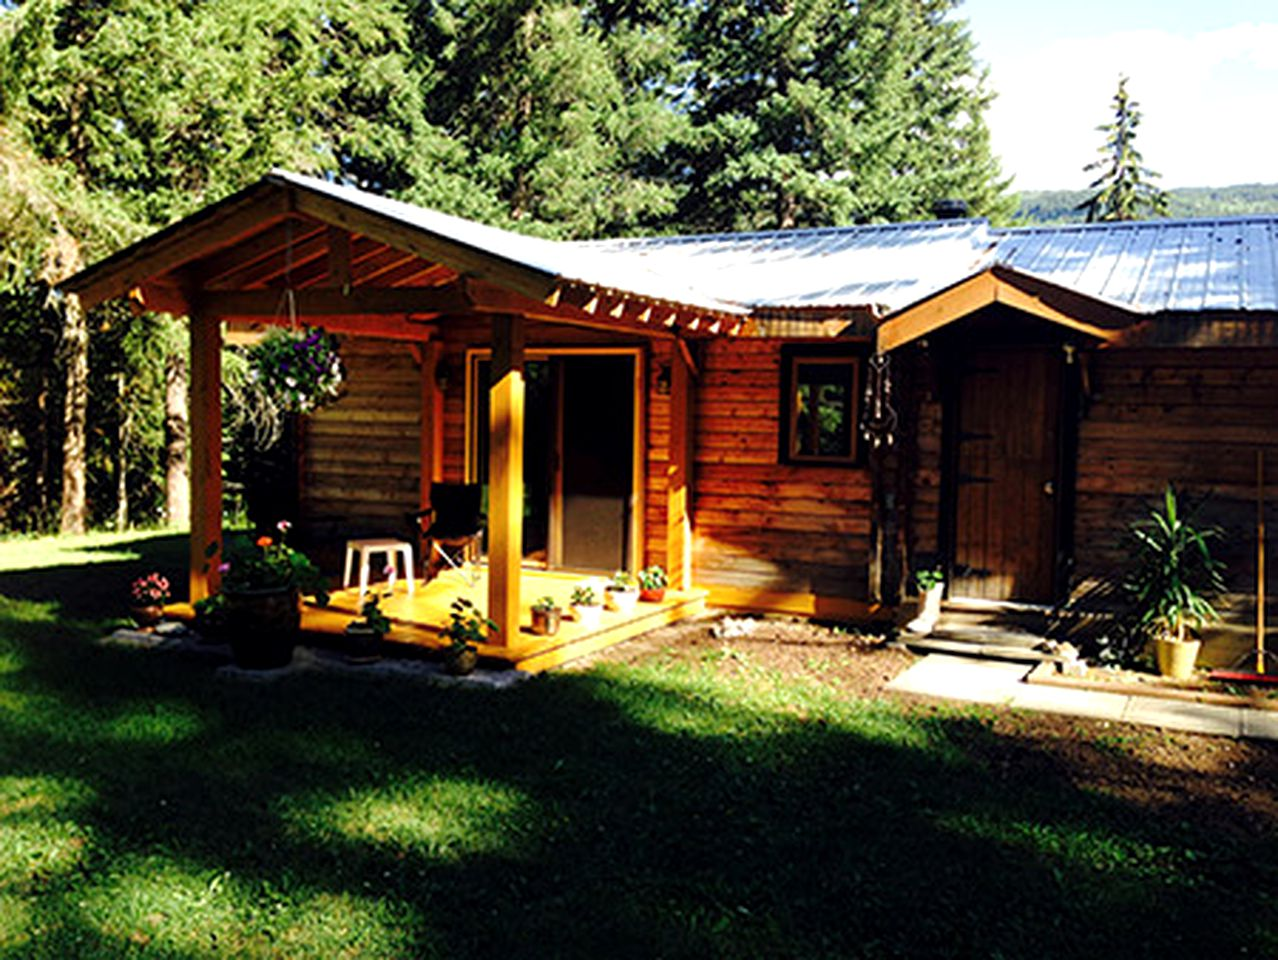 Cabins (Clearwater, British Columbia, Canada)